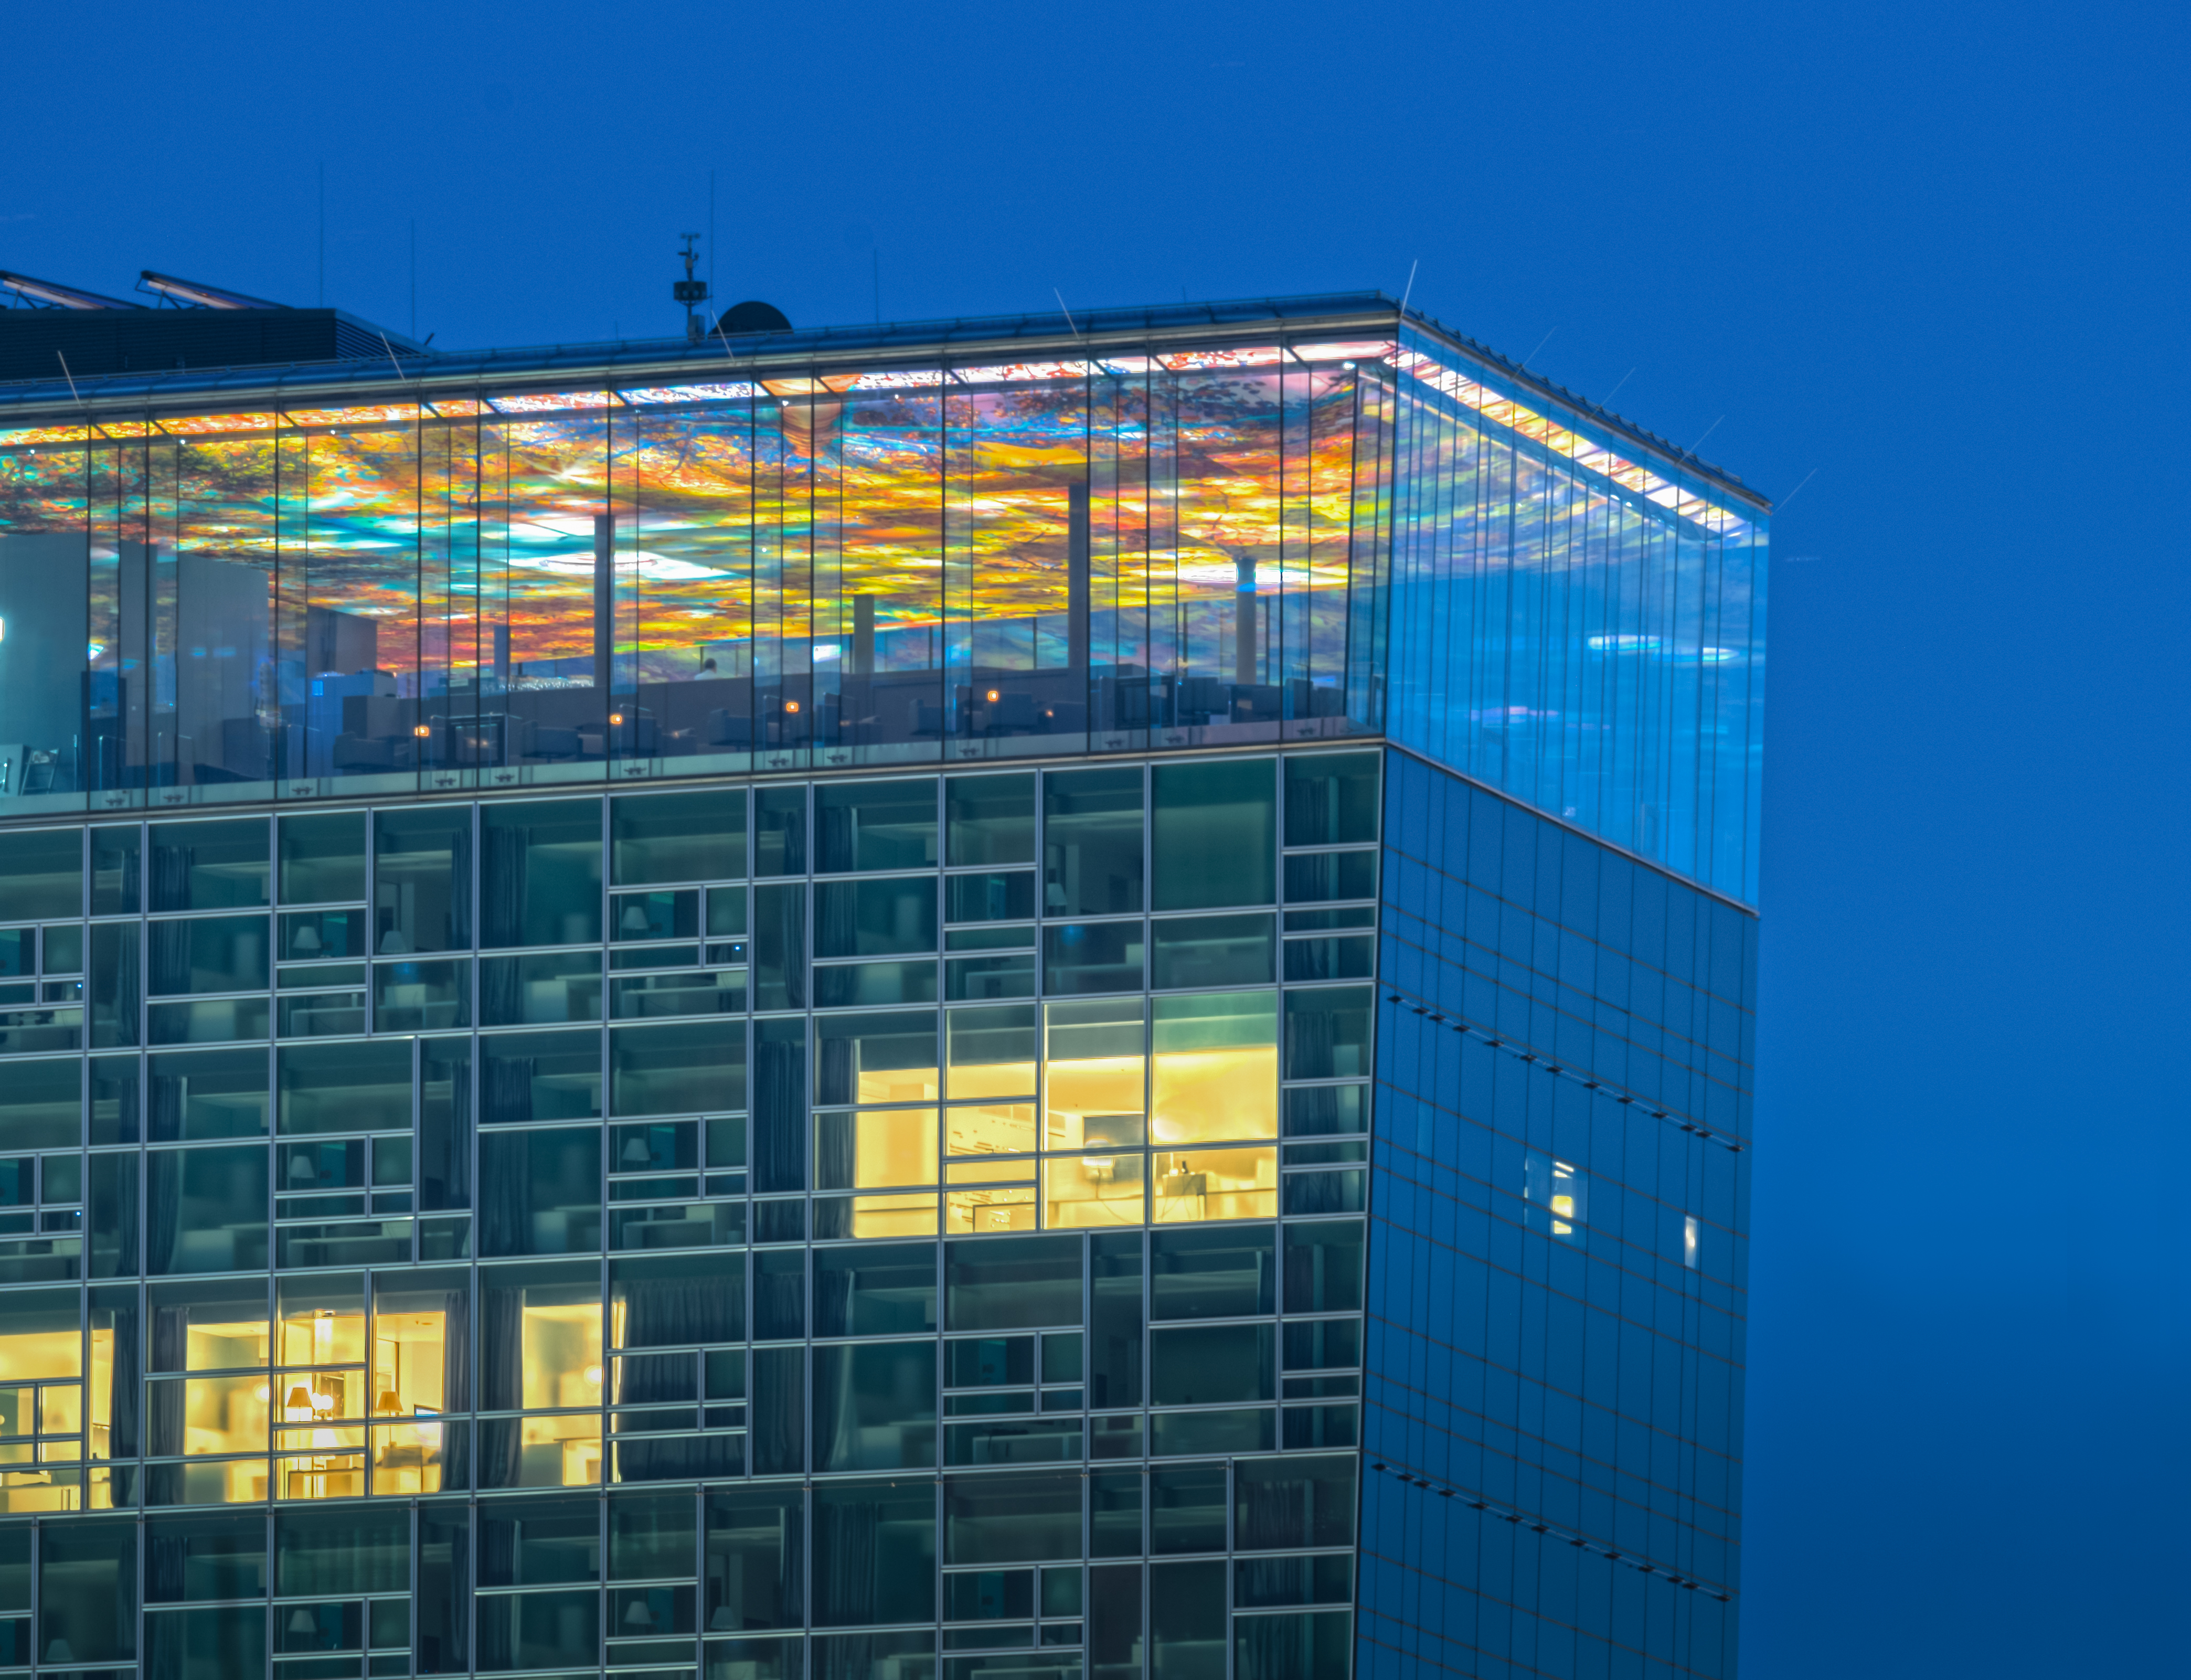 Uniqa Tower Jean Nouvel - Blue hour - Le Loft Restaurant 18th Floor 8117